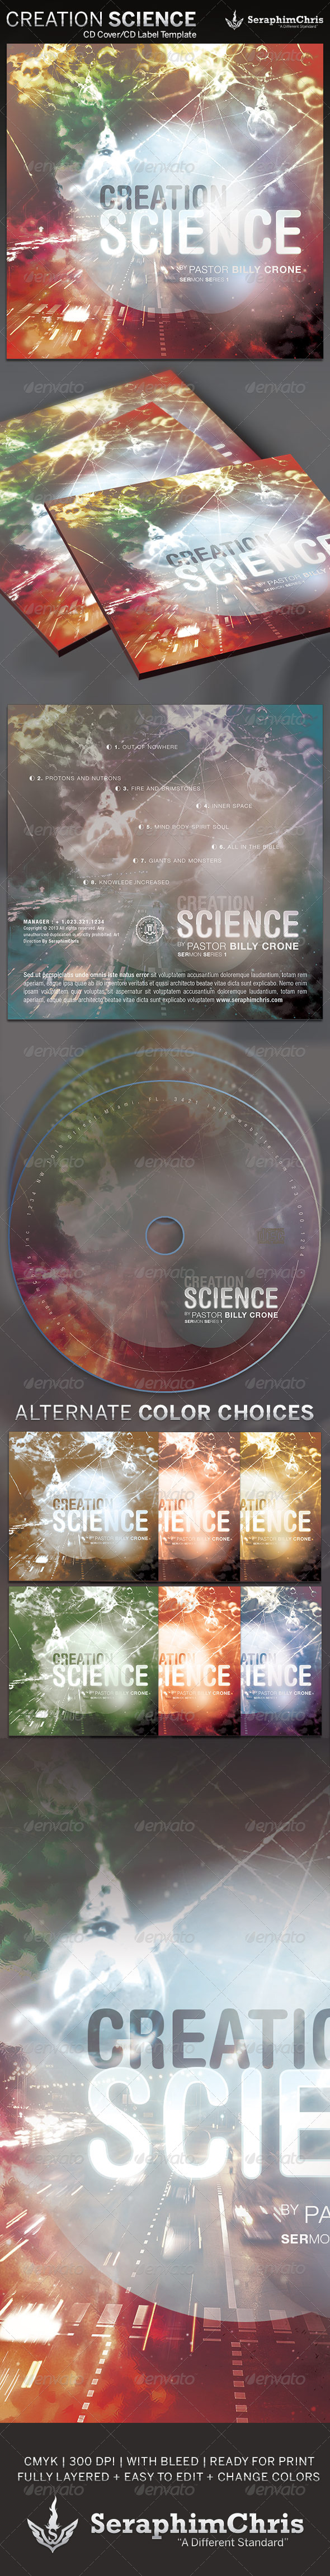 GraphicRiver Creation Science CD Cover Artwork Template 4148880